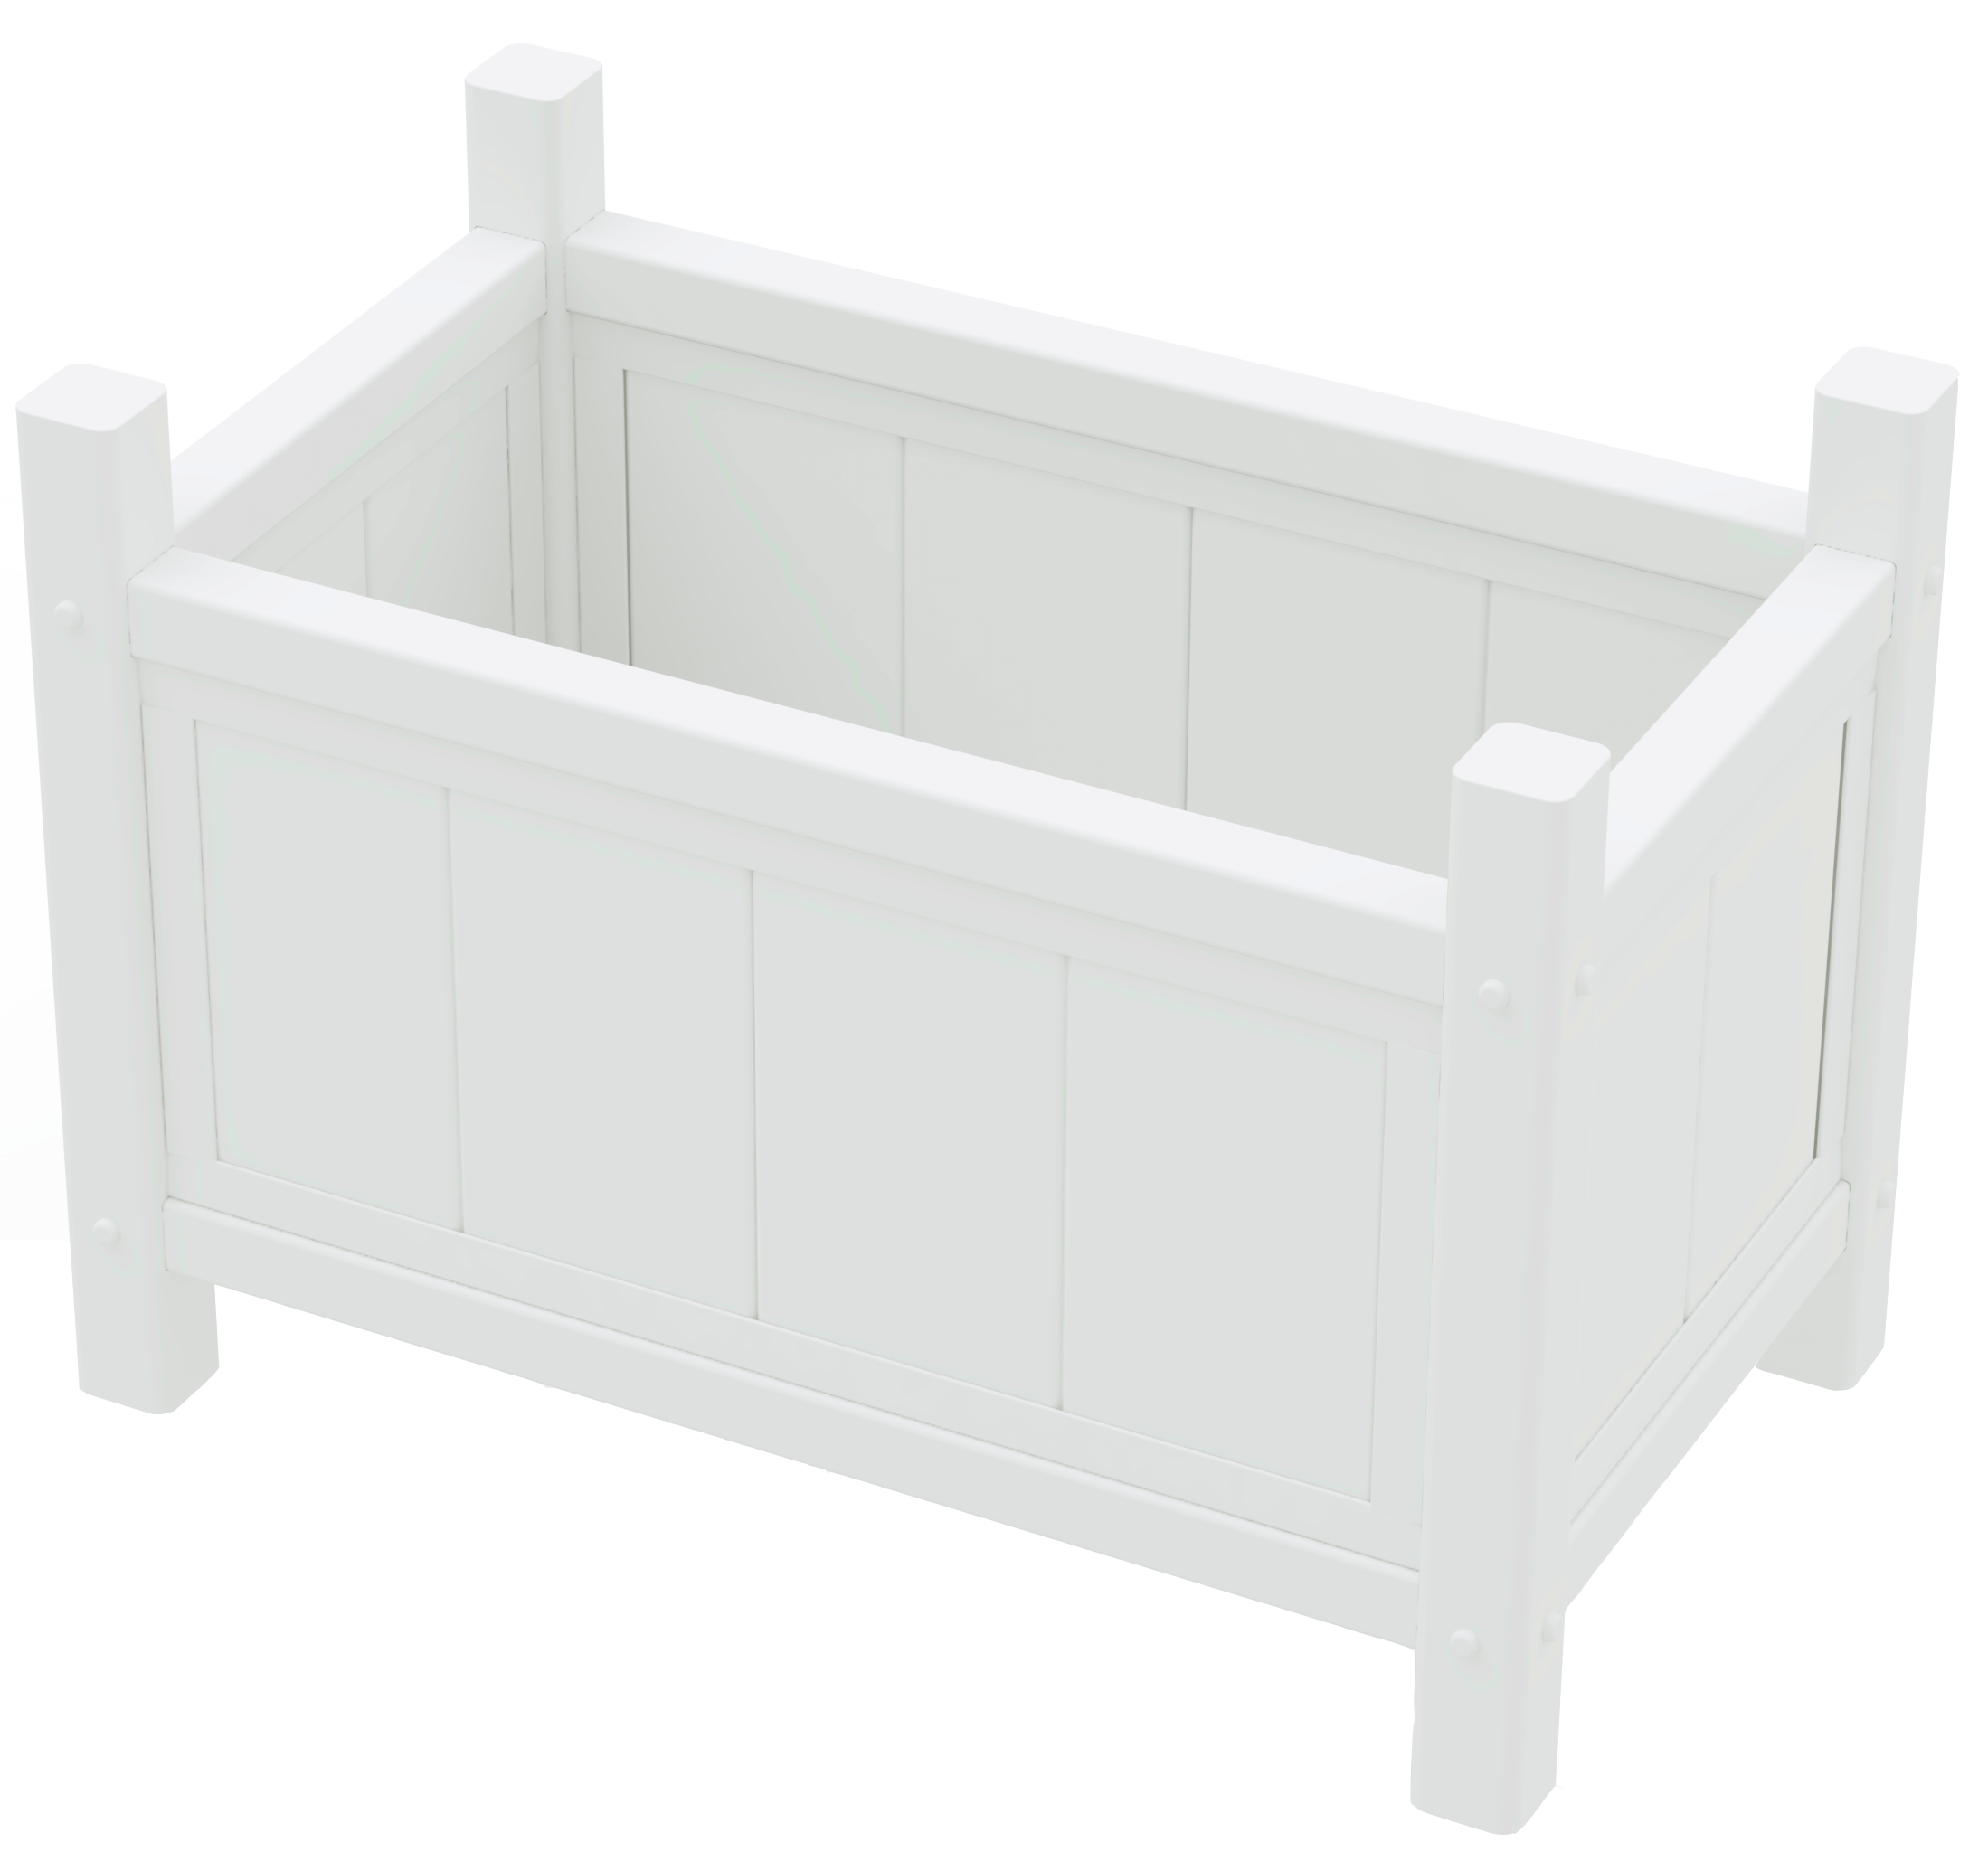 Vinyl Planter Boxes - Superior Plastic Products